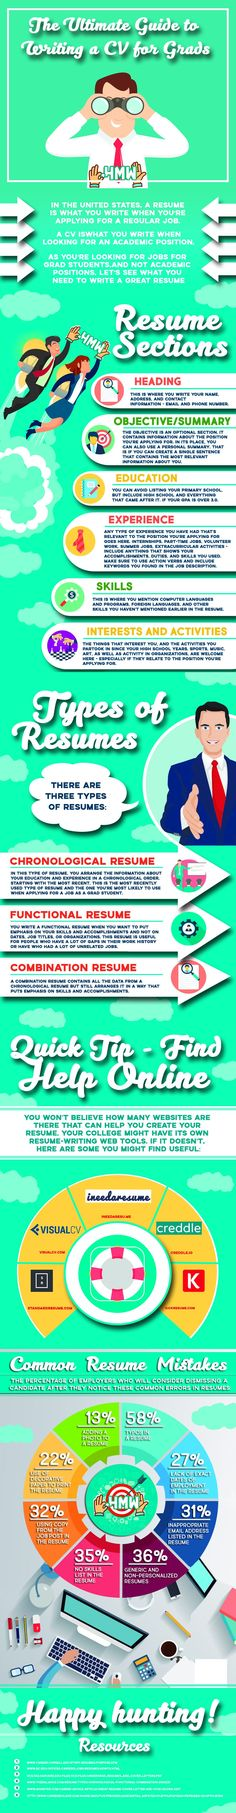 directing resume - Google Search Application Resources Pinterest - common resume mistakes